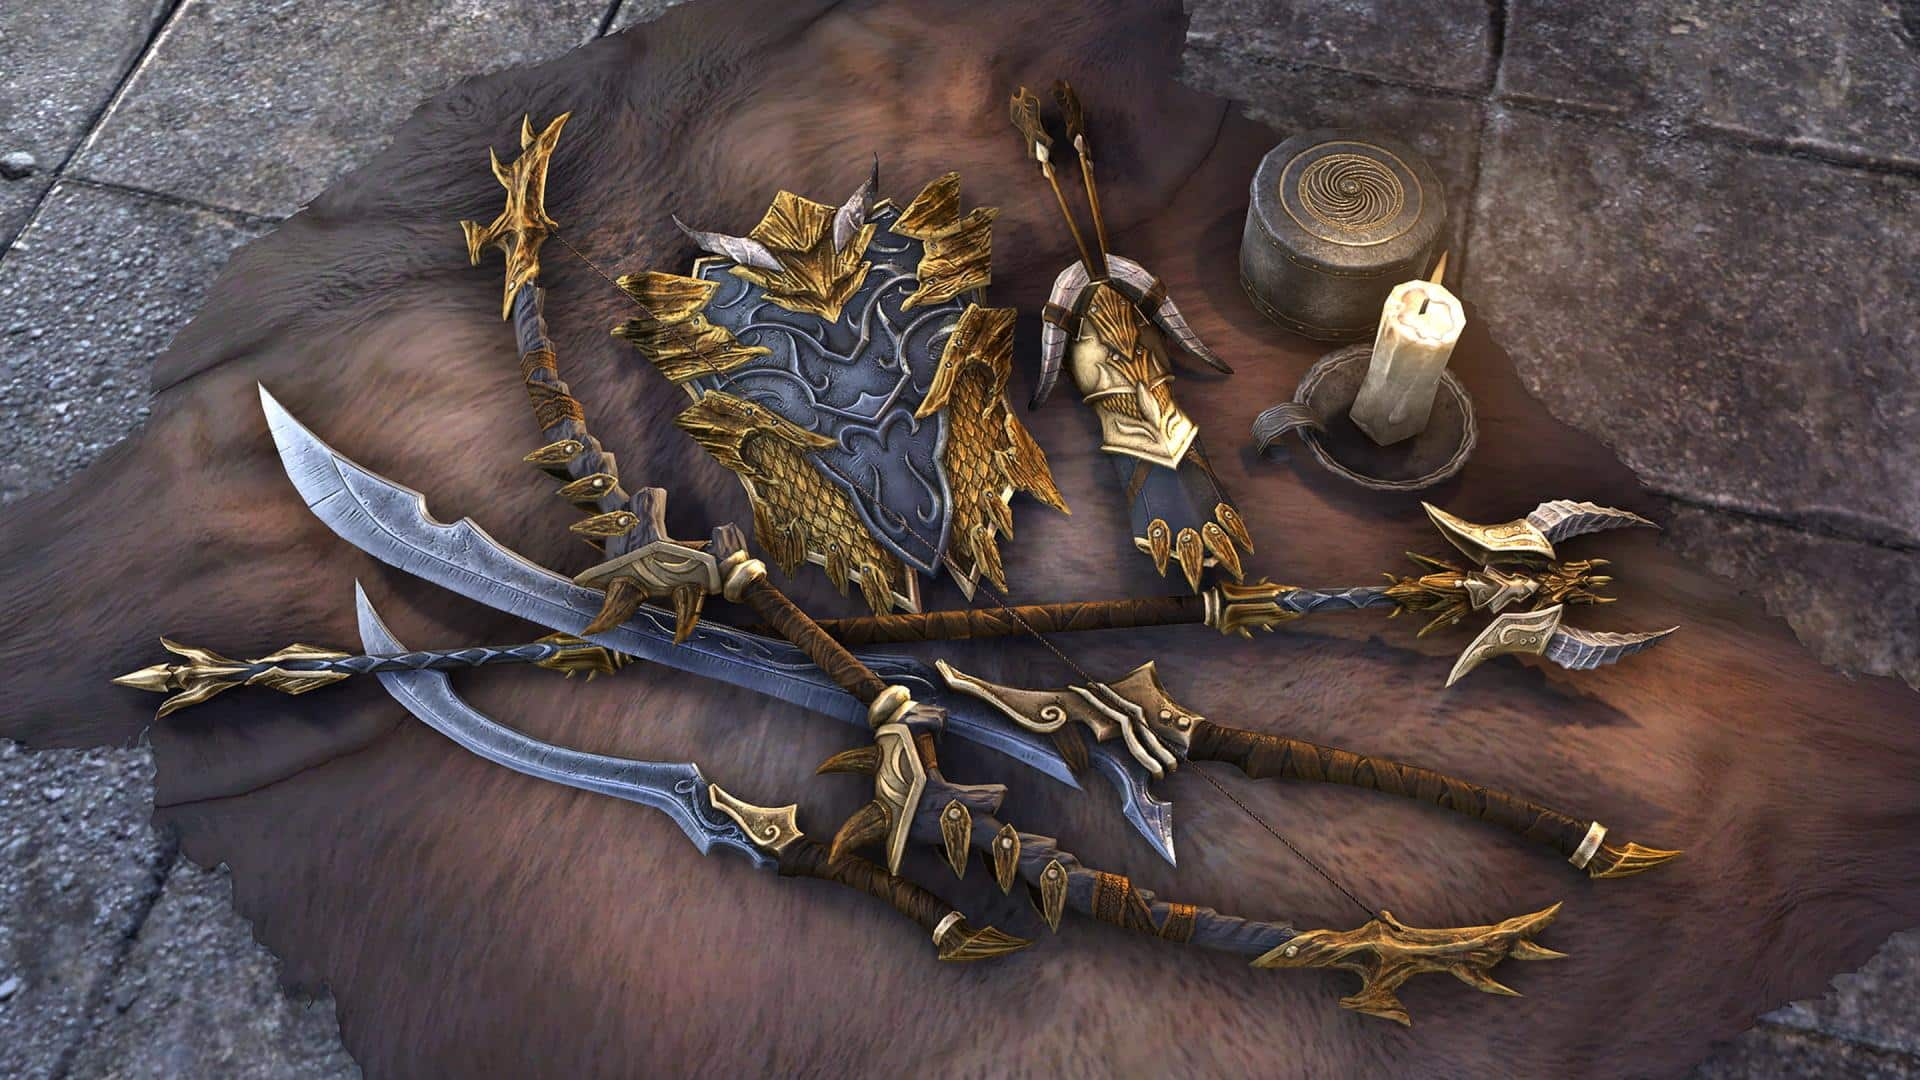 Crown Store Showcase October 2019 The Elder Scrolls Online Weapons and armor in elder scrolls online can come with a number of traits. crown store showcase october 2019